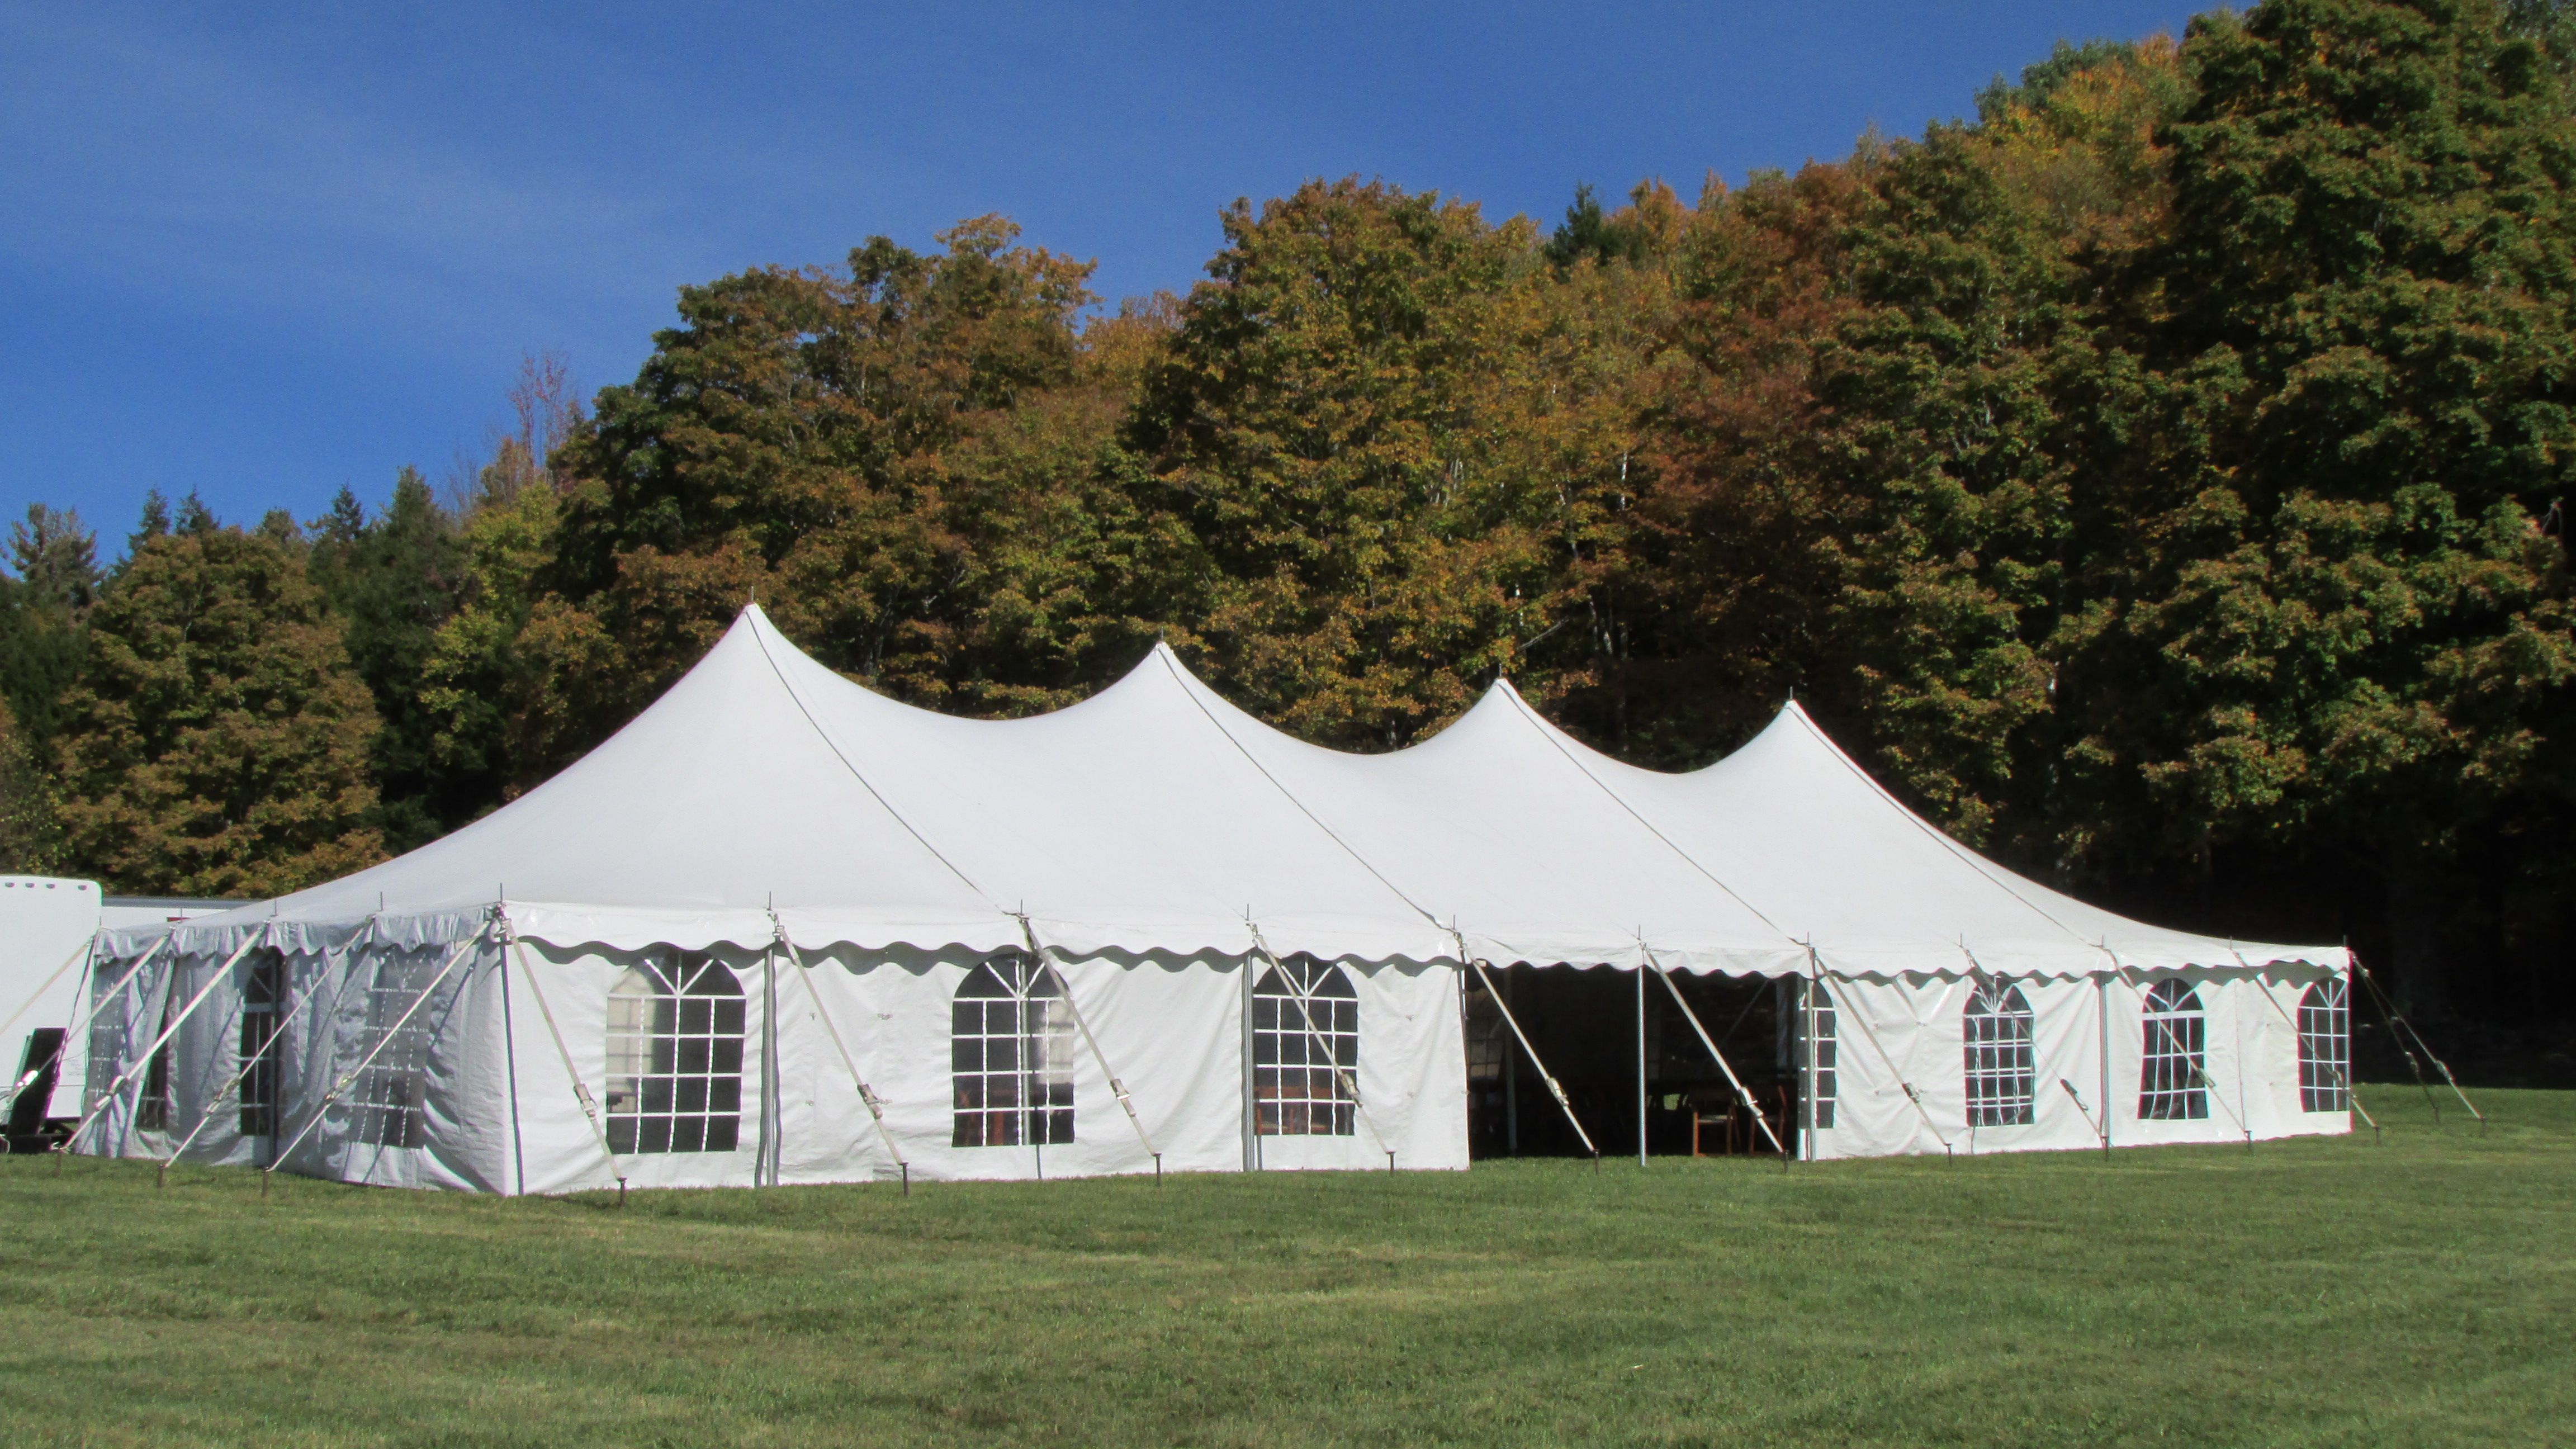 40 x 100 Wedding Tent with Cathedral Window Sides & 40 x 100 Wedding Tent with Cathedral Window Sides | Tent Photos ...